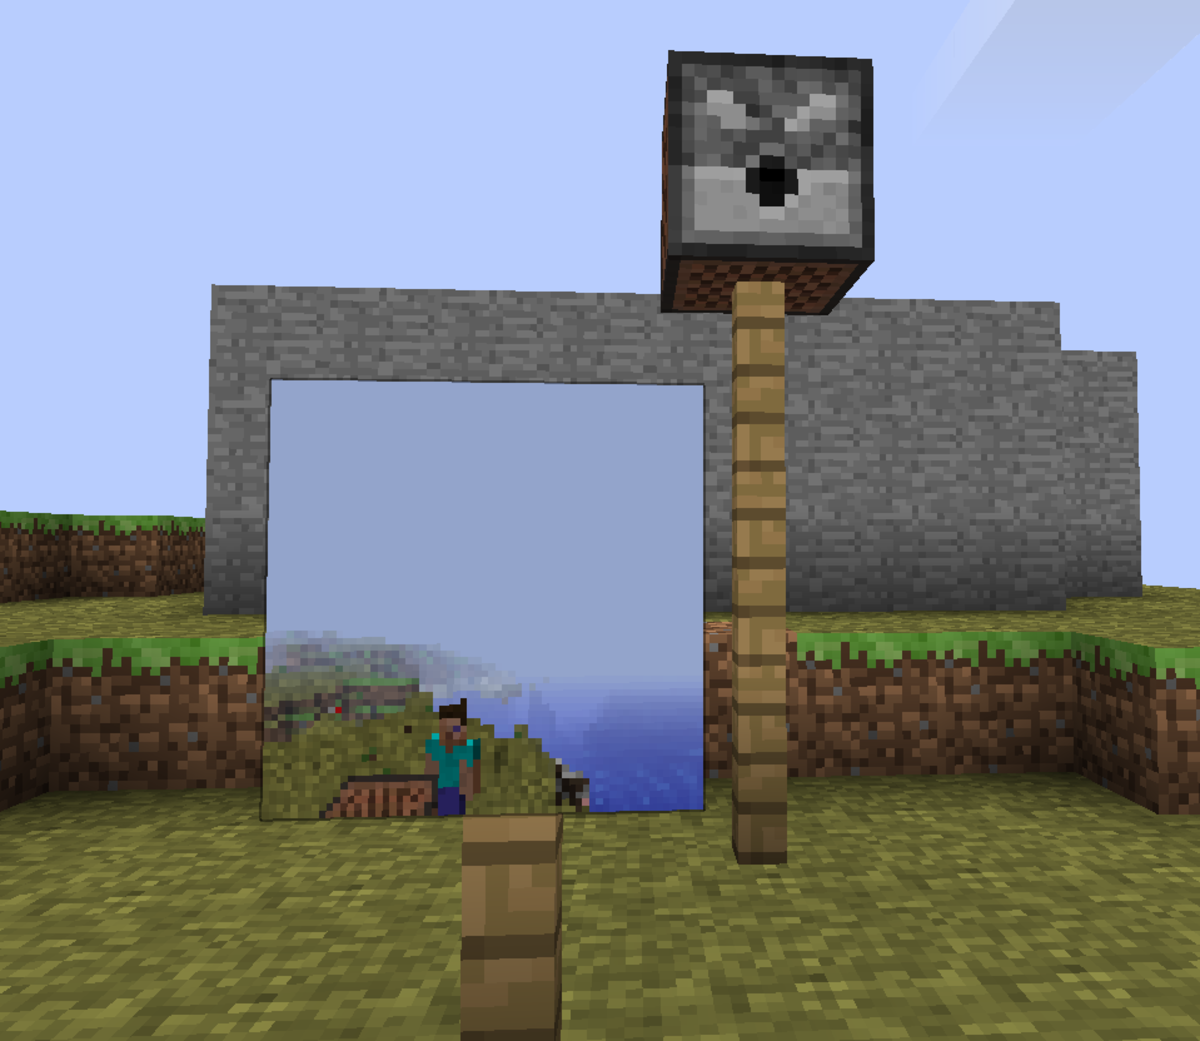 For more magical Minecraft mods, visit: